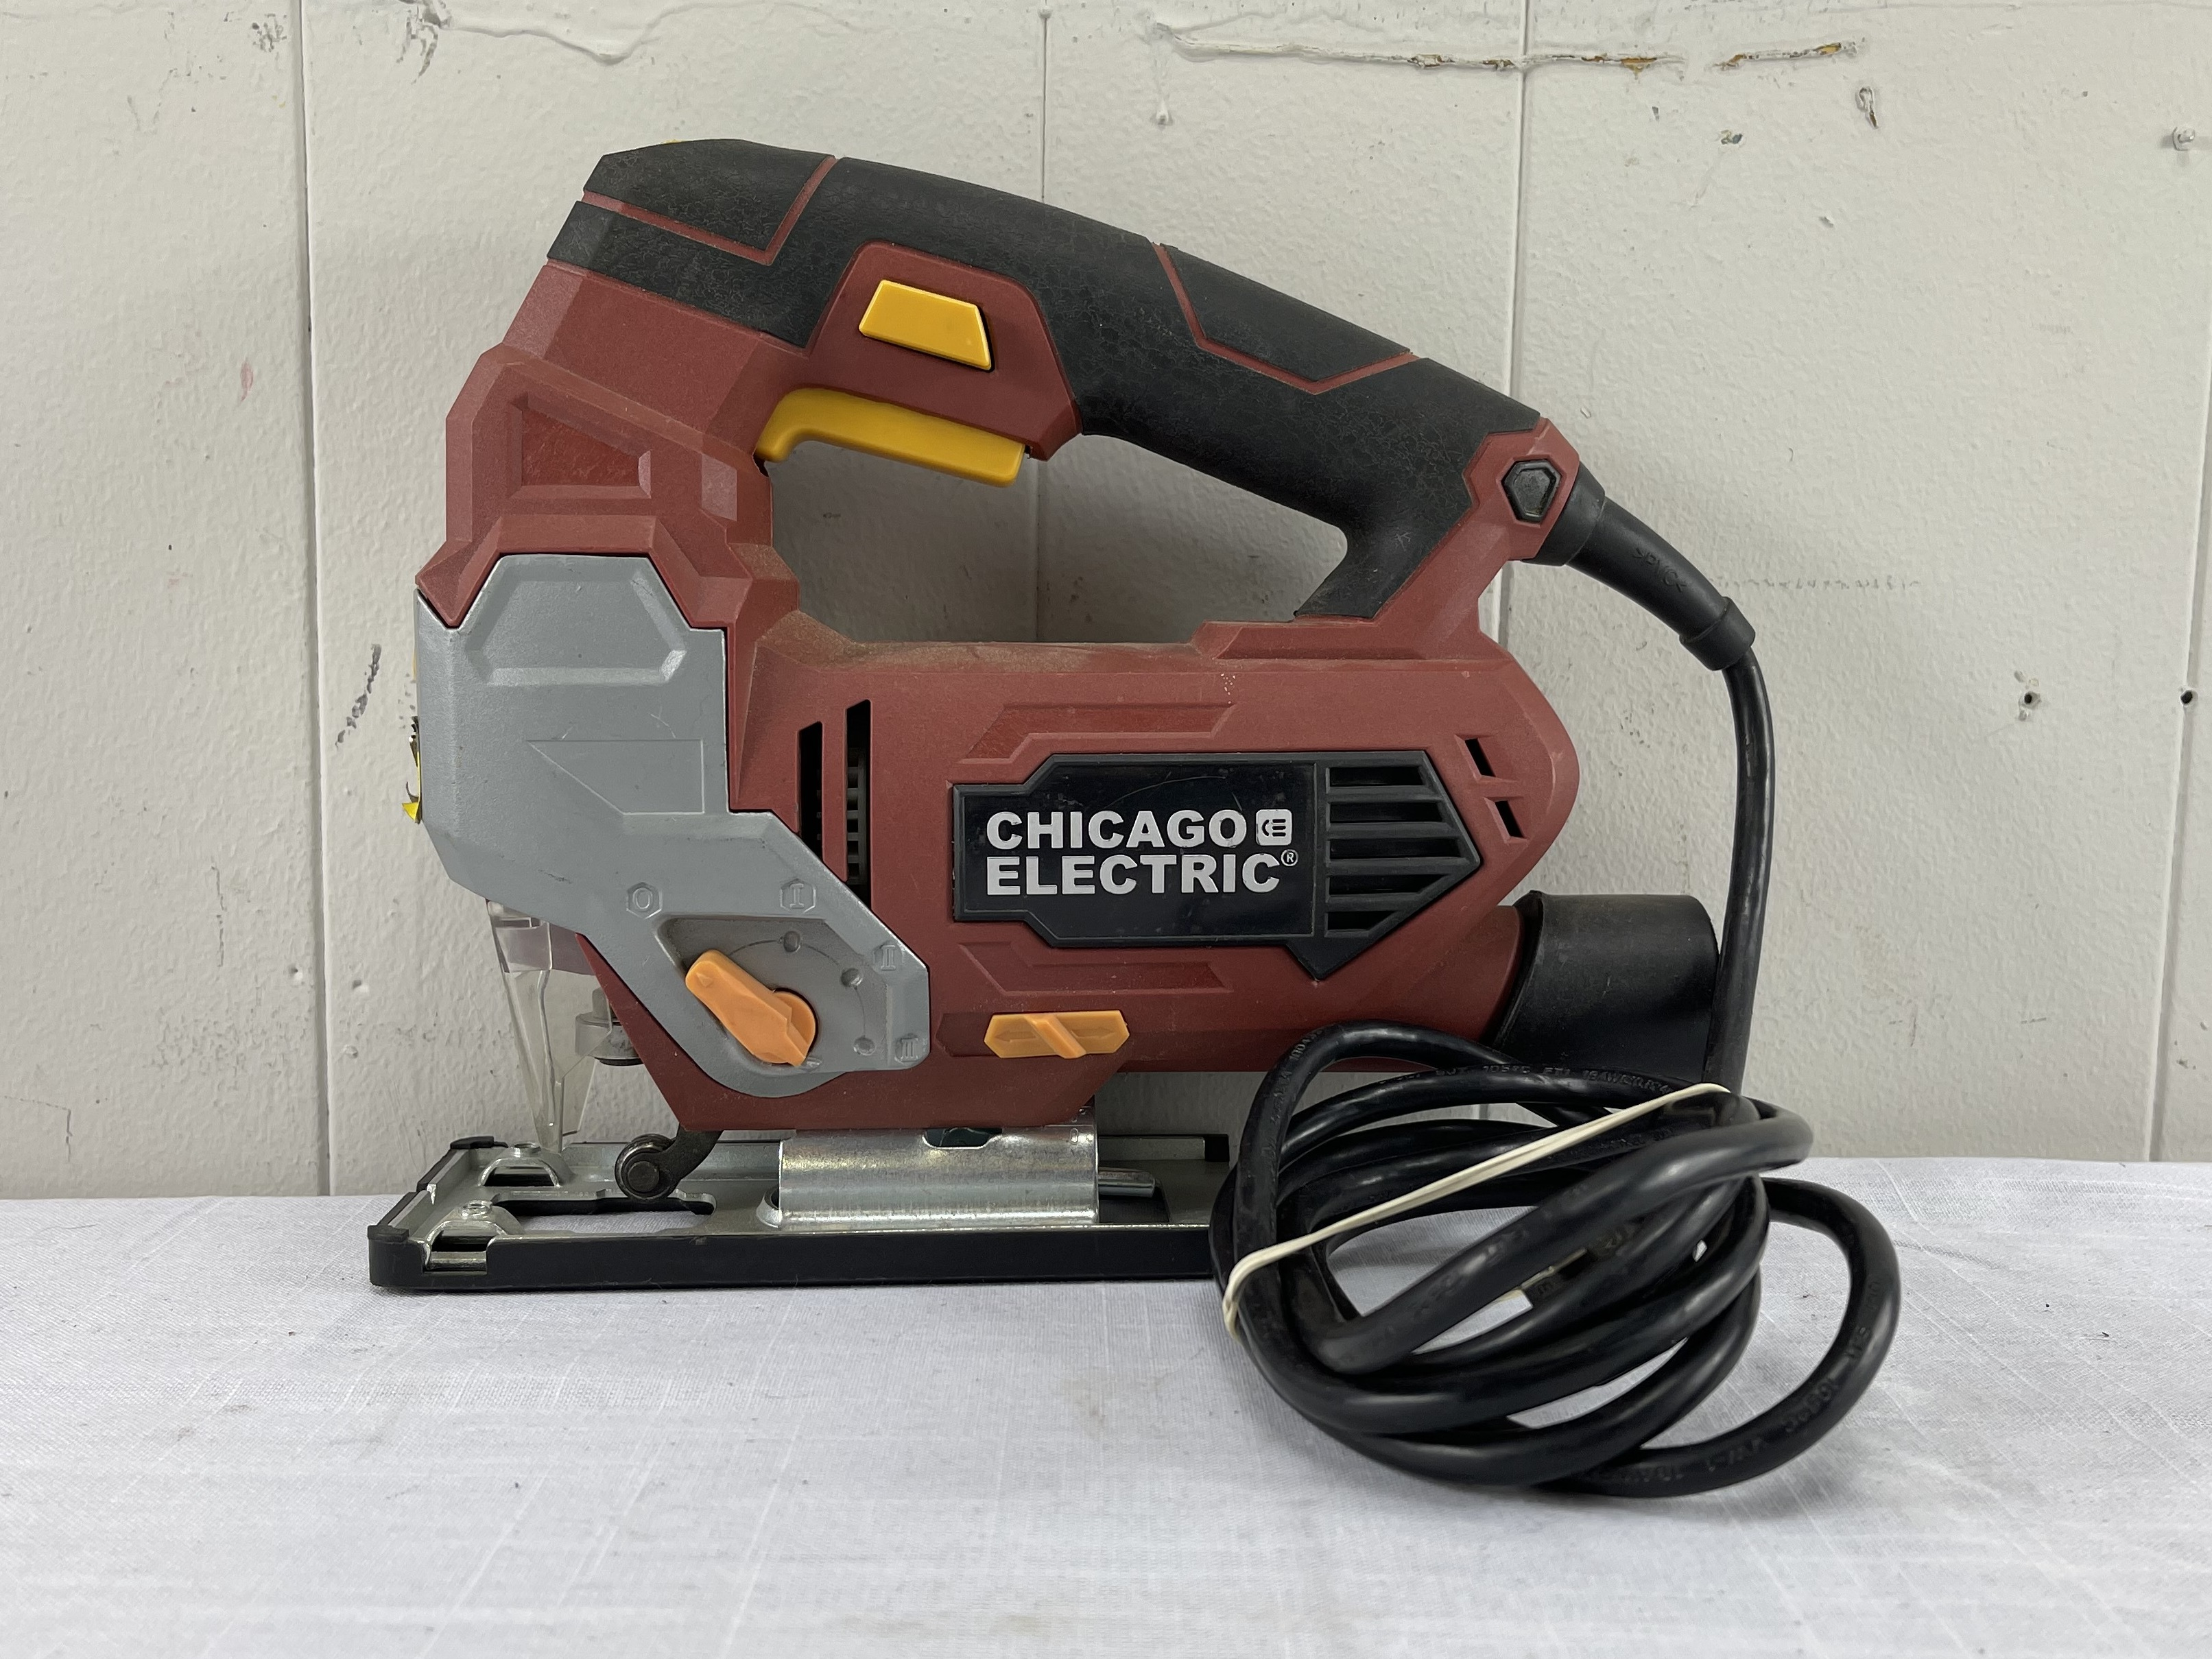 Chicago Electric Orbital Jigsaw